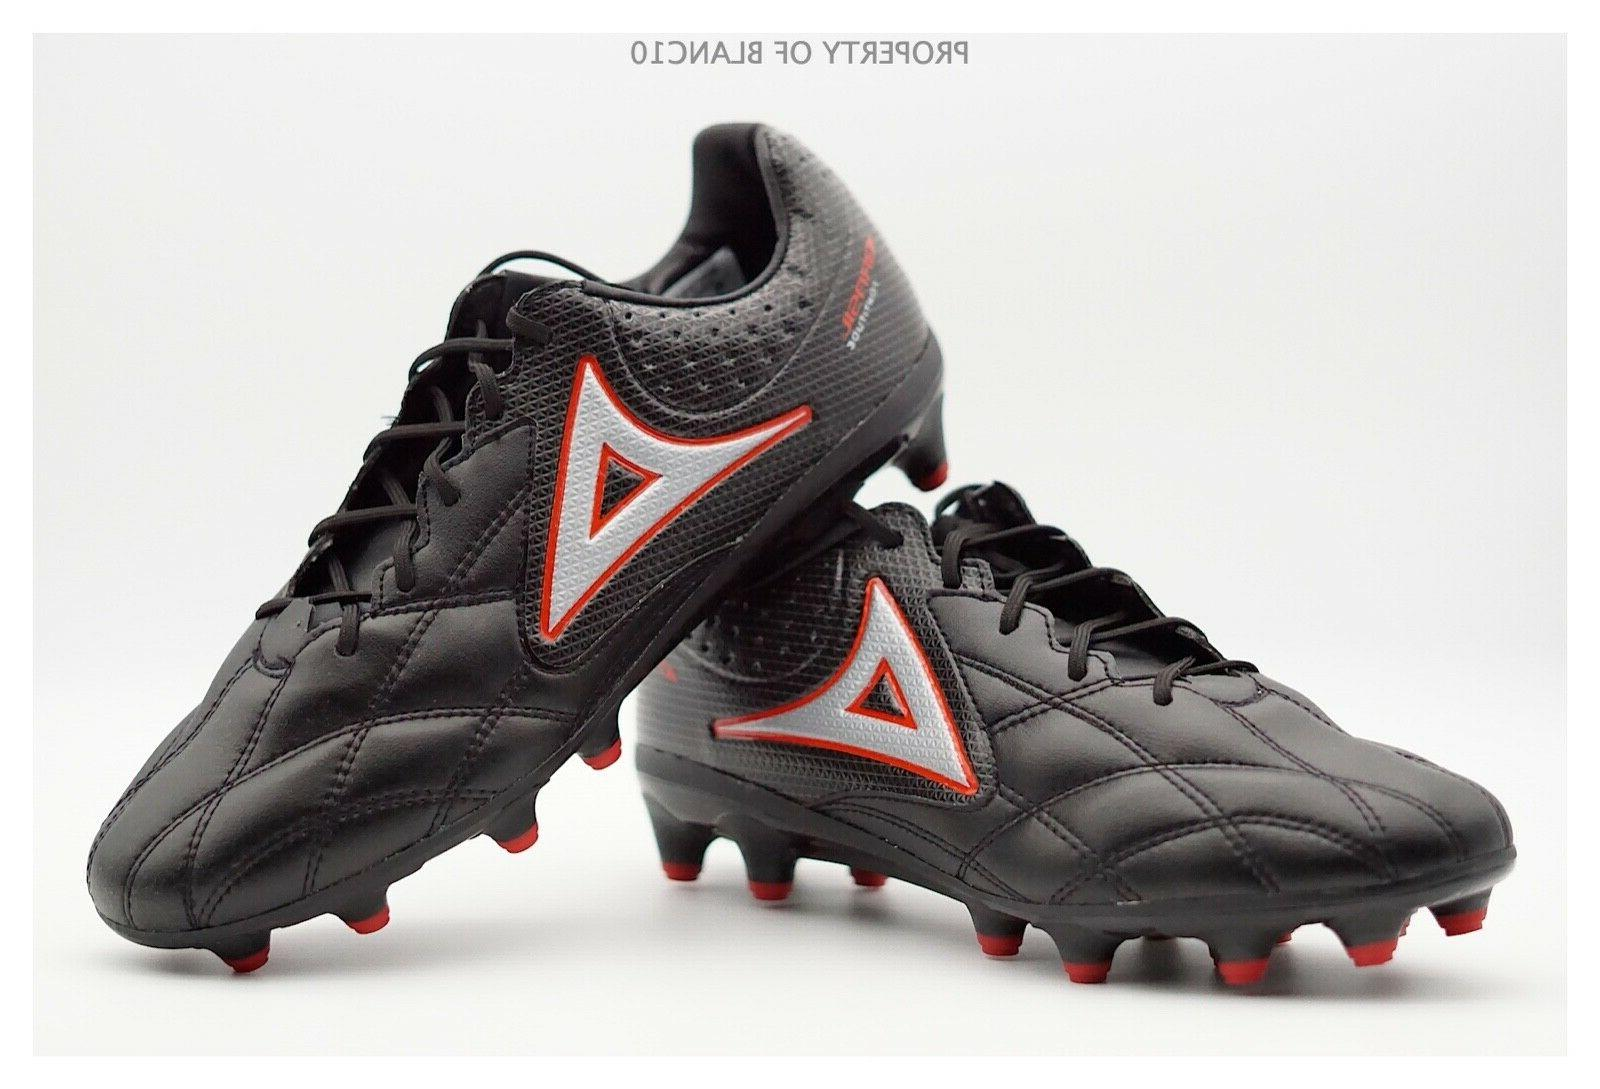 Pirma Cleats-Style Fortitude